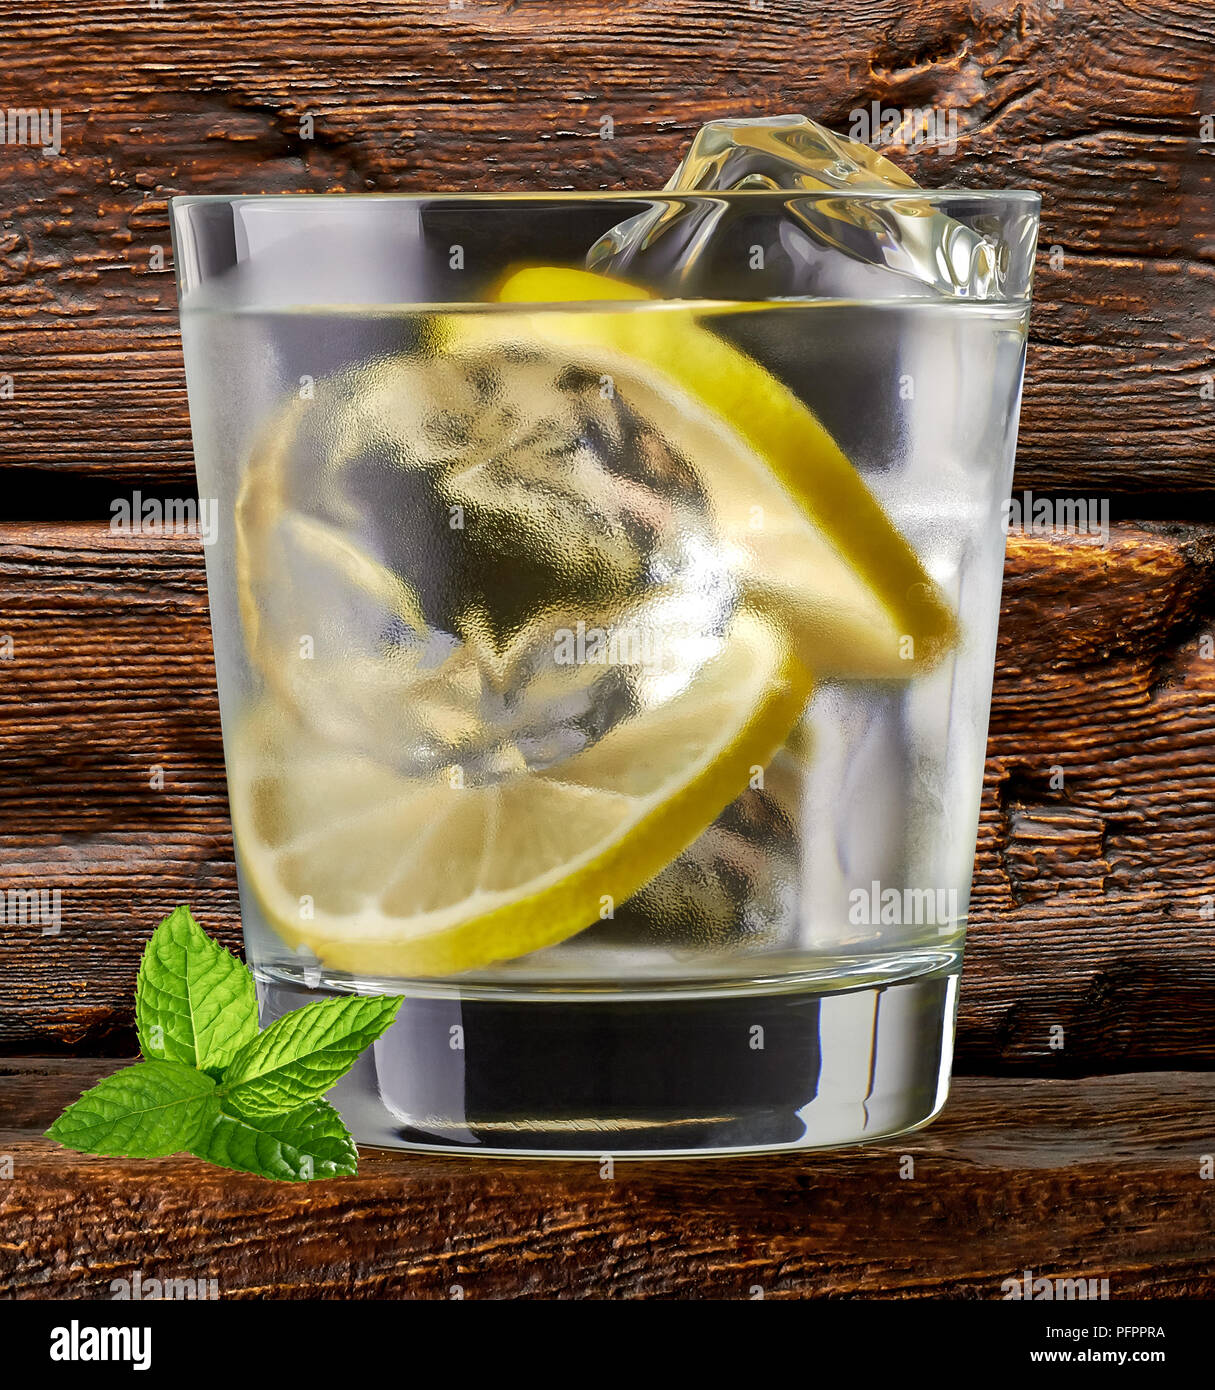 Gin tonic, vodka or rum with lime wedges on wooden table and background - Stock Image